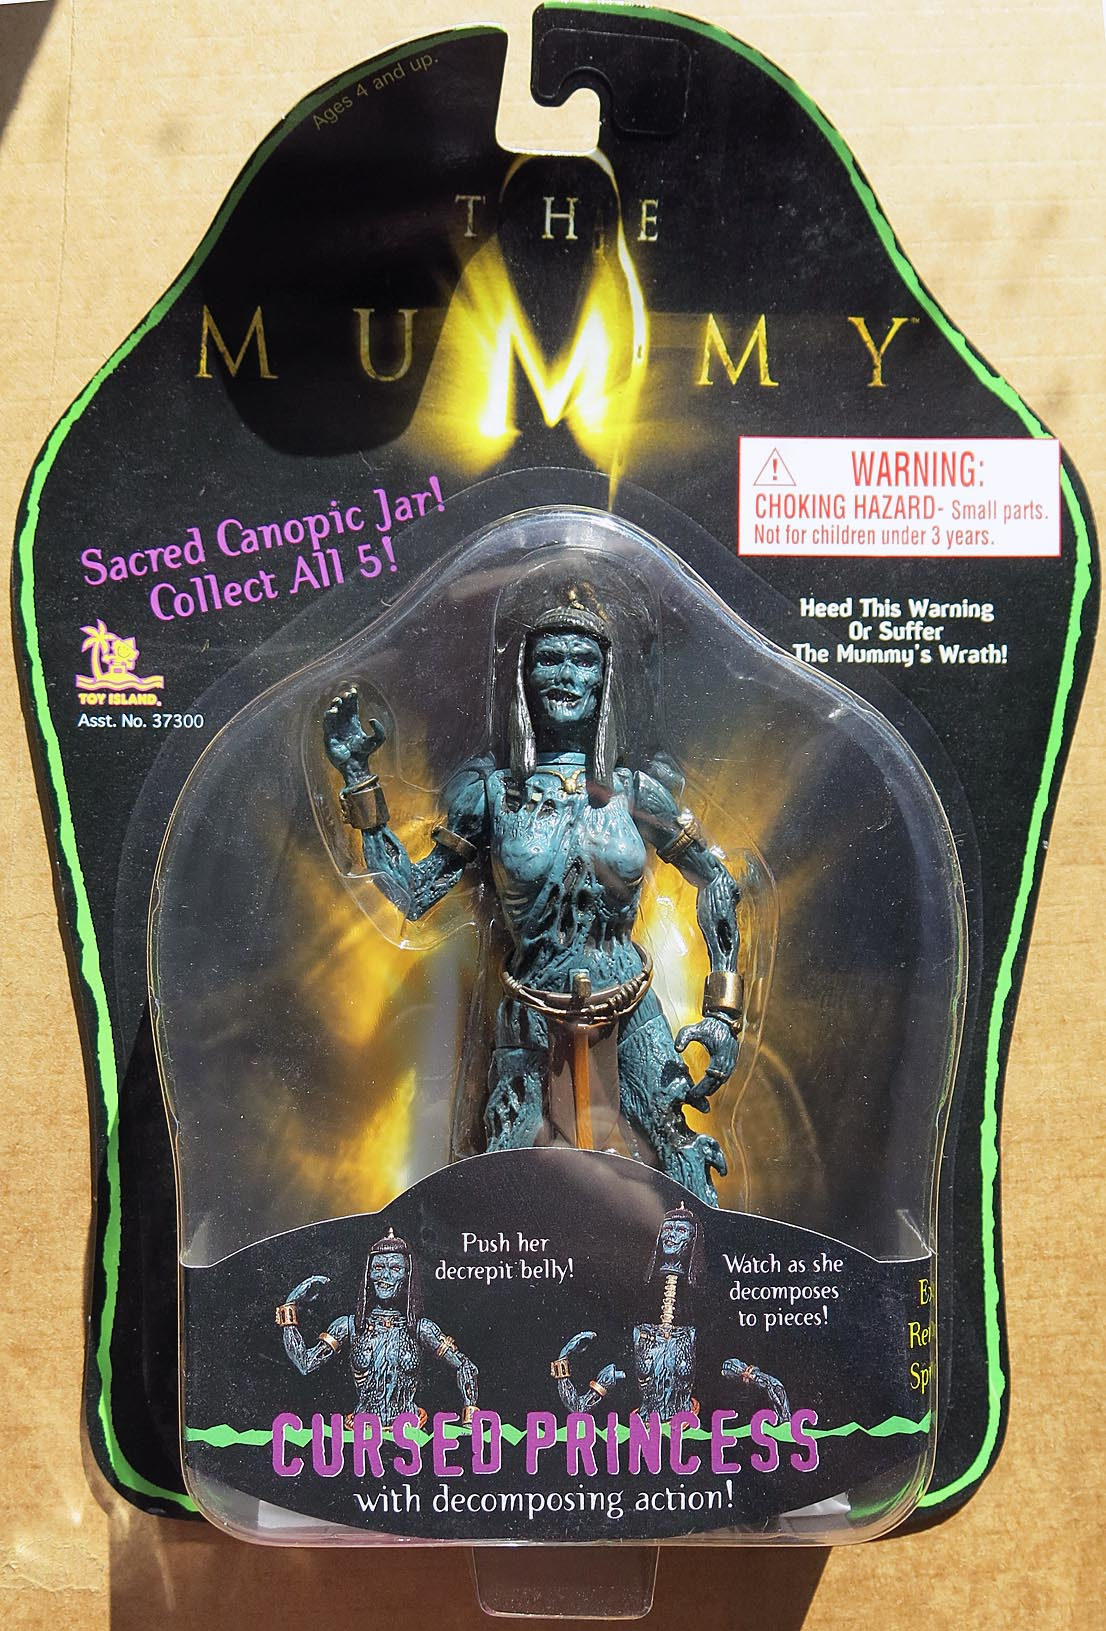 Mummy (The) Movie Cursed Princess Action Figure